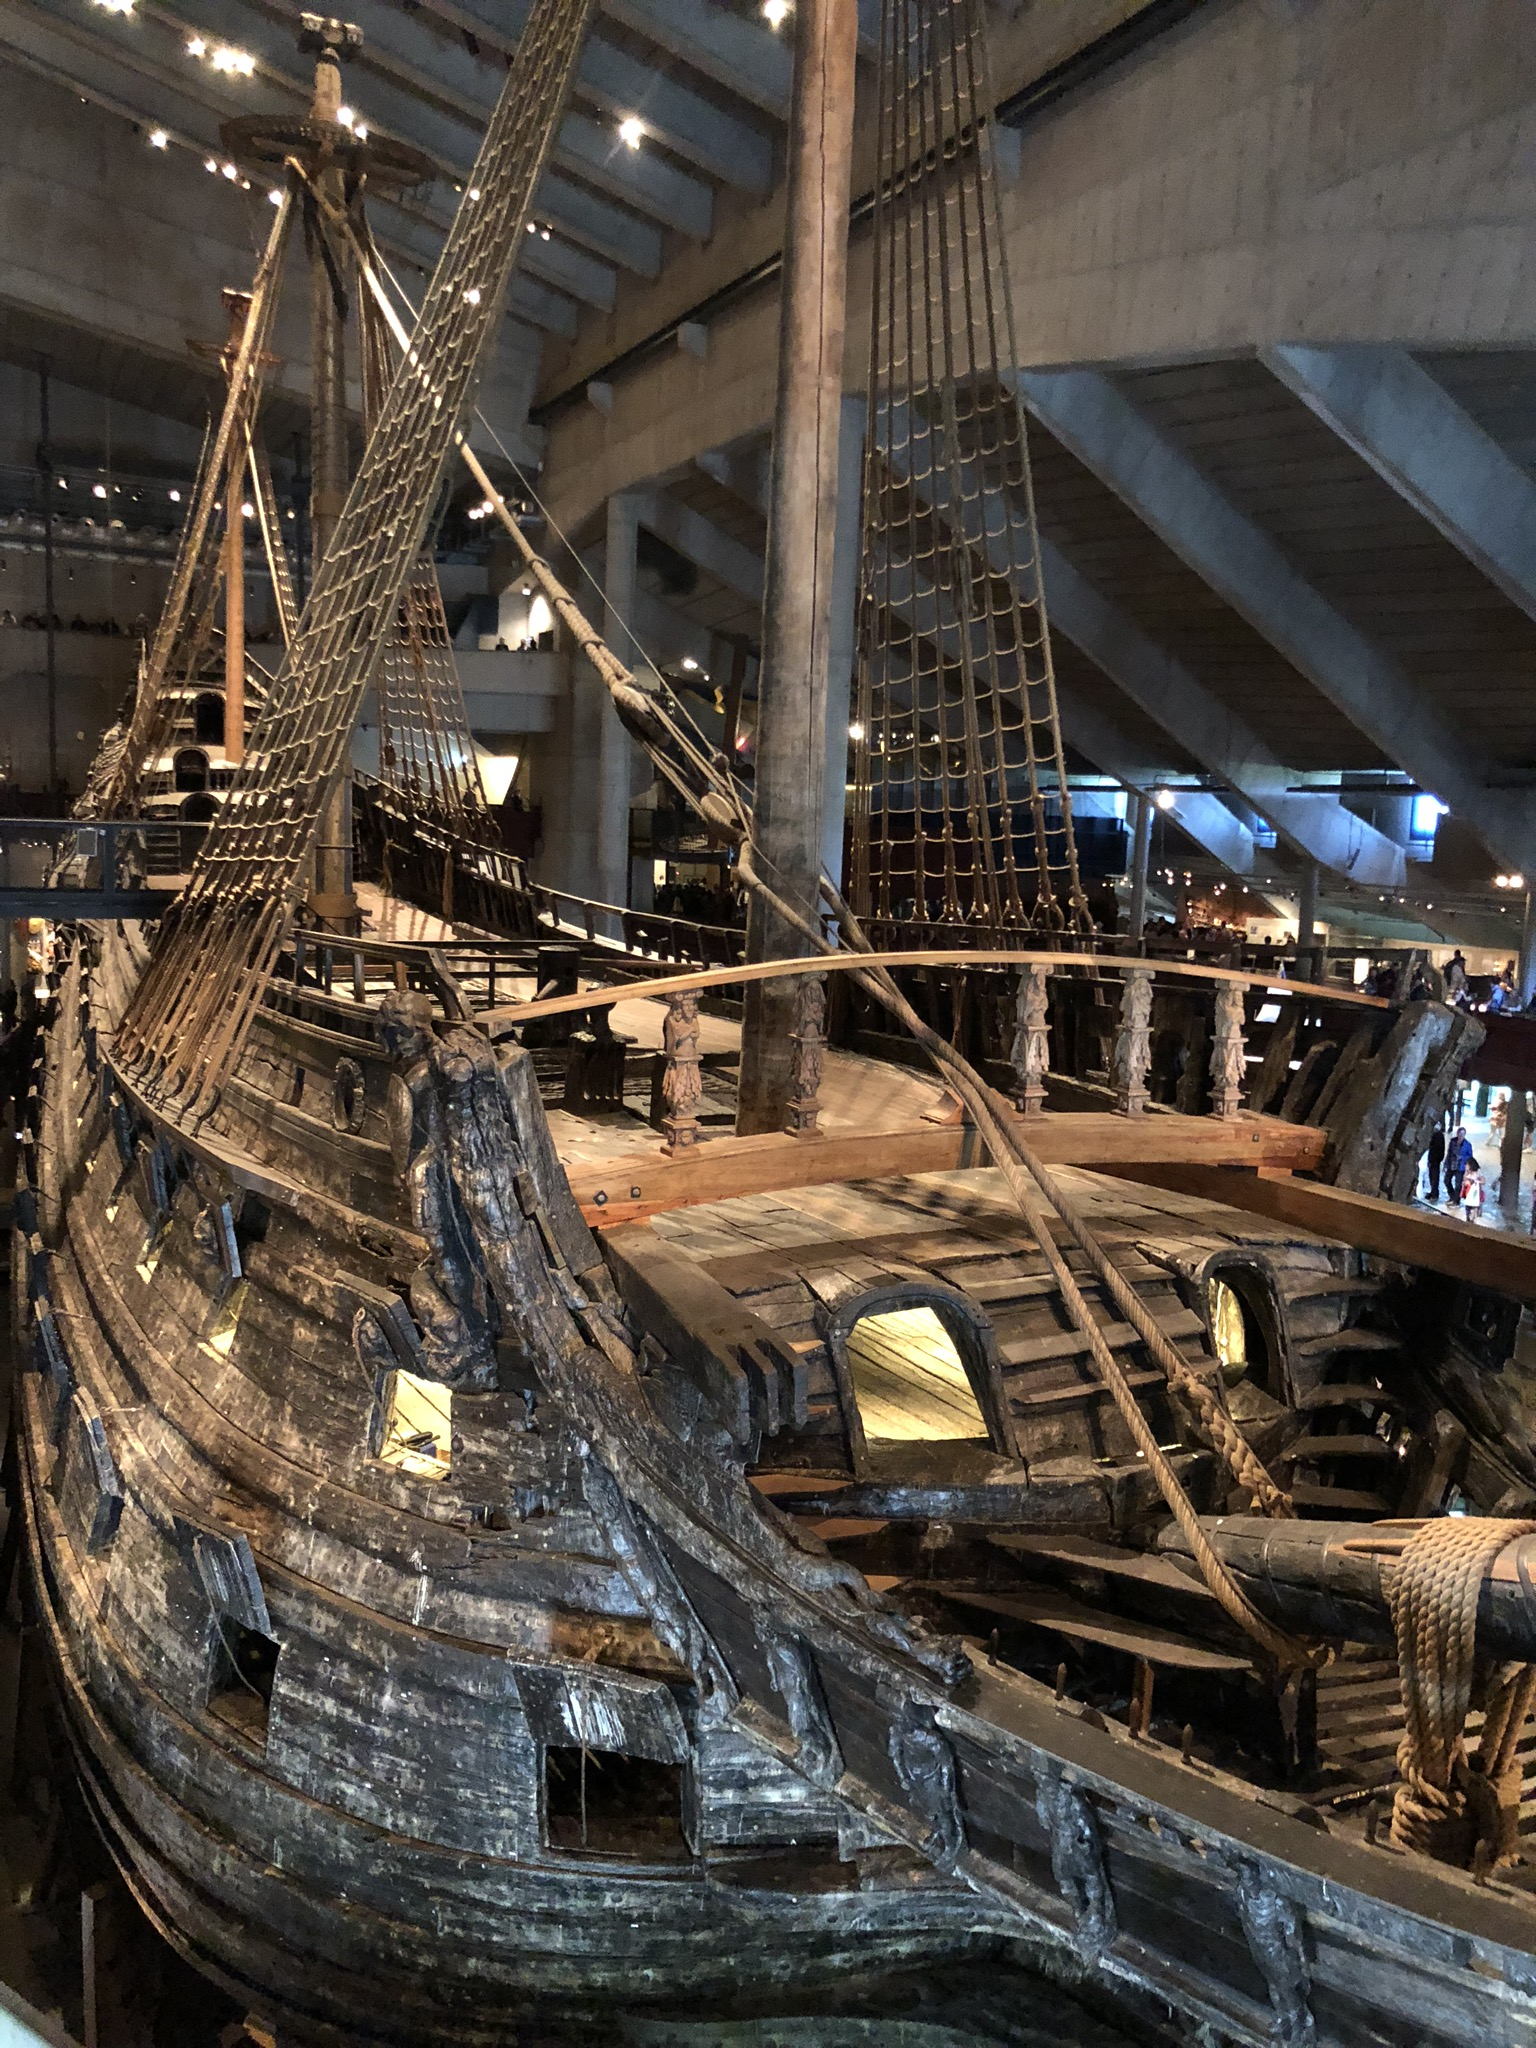 The Vasa Museum is home for one of the most interesting displays we have seen. The museum houses an absolutely enormous wooden ship named Vasa built around 1620. The Vasa was intended to accomodate over 400 crew members. And it is in remarkable condition due to the unusual circumstance of its sinking in Stockholm Harbor on its maiden voyage. As it sailed out of the harbor it listed to one side and sank in 30 meters of water. The waters of the cold Baltic sea preserved the wood in remarkable condition until 1960s when it was raised, restored and placed in the museum.  To add insult to injury, the top of the main mast, which was around 100 feet tall, stuck out of the water to remind the shipbuilder that his creation had sunk before it left the harbor.